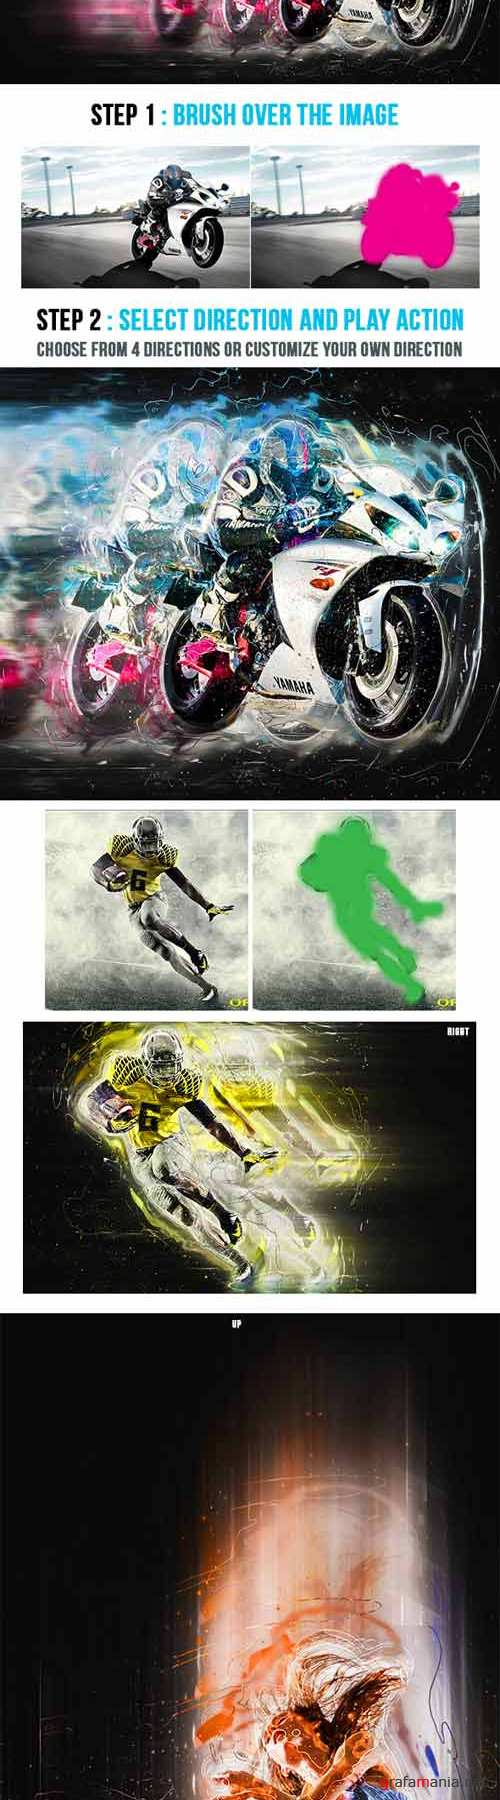 Motionflow Photoshop Action - Graphicriver 9300501